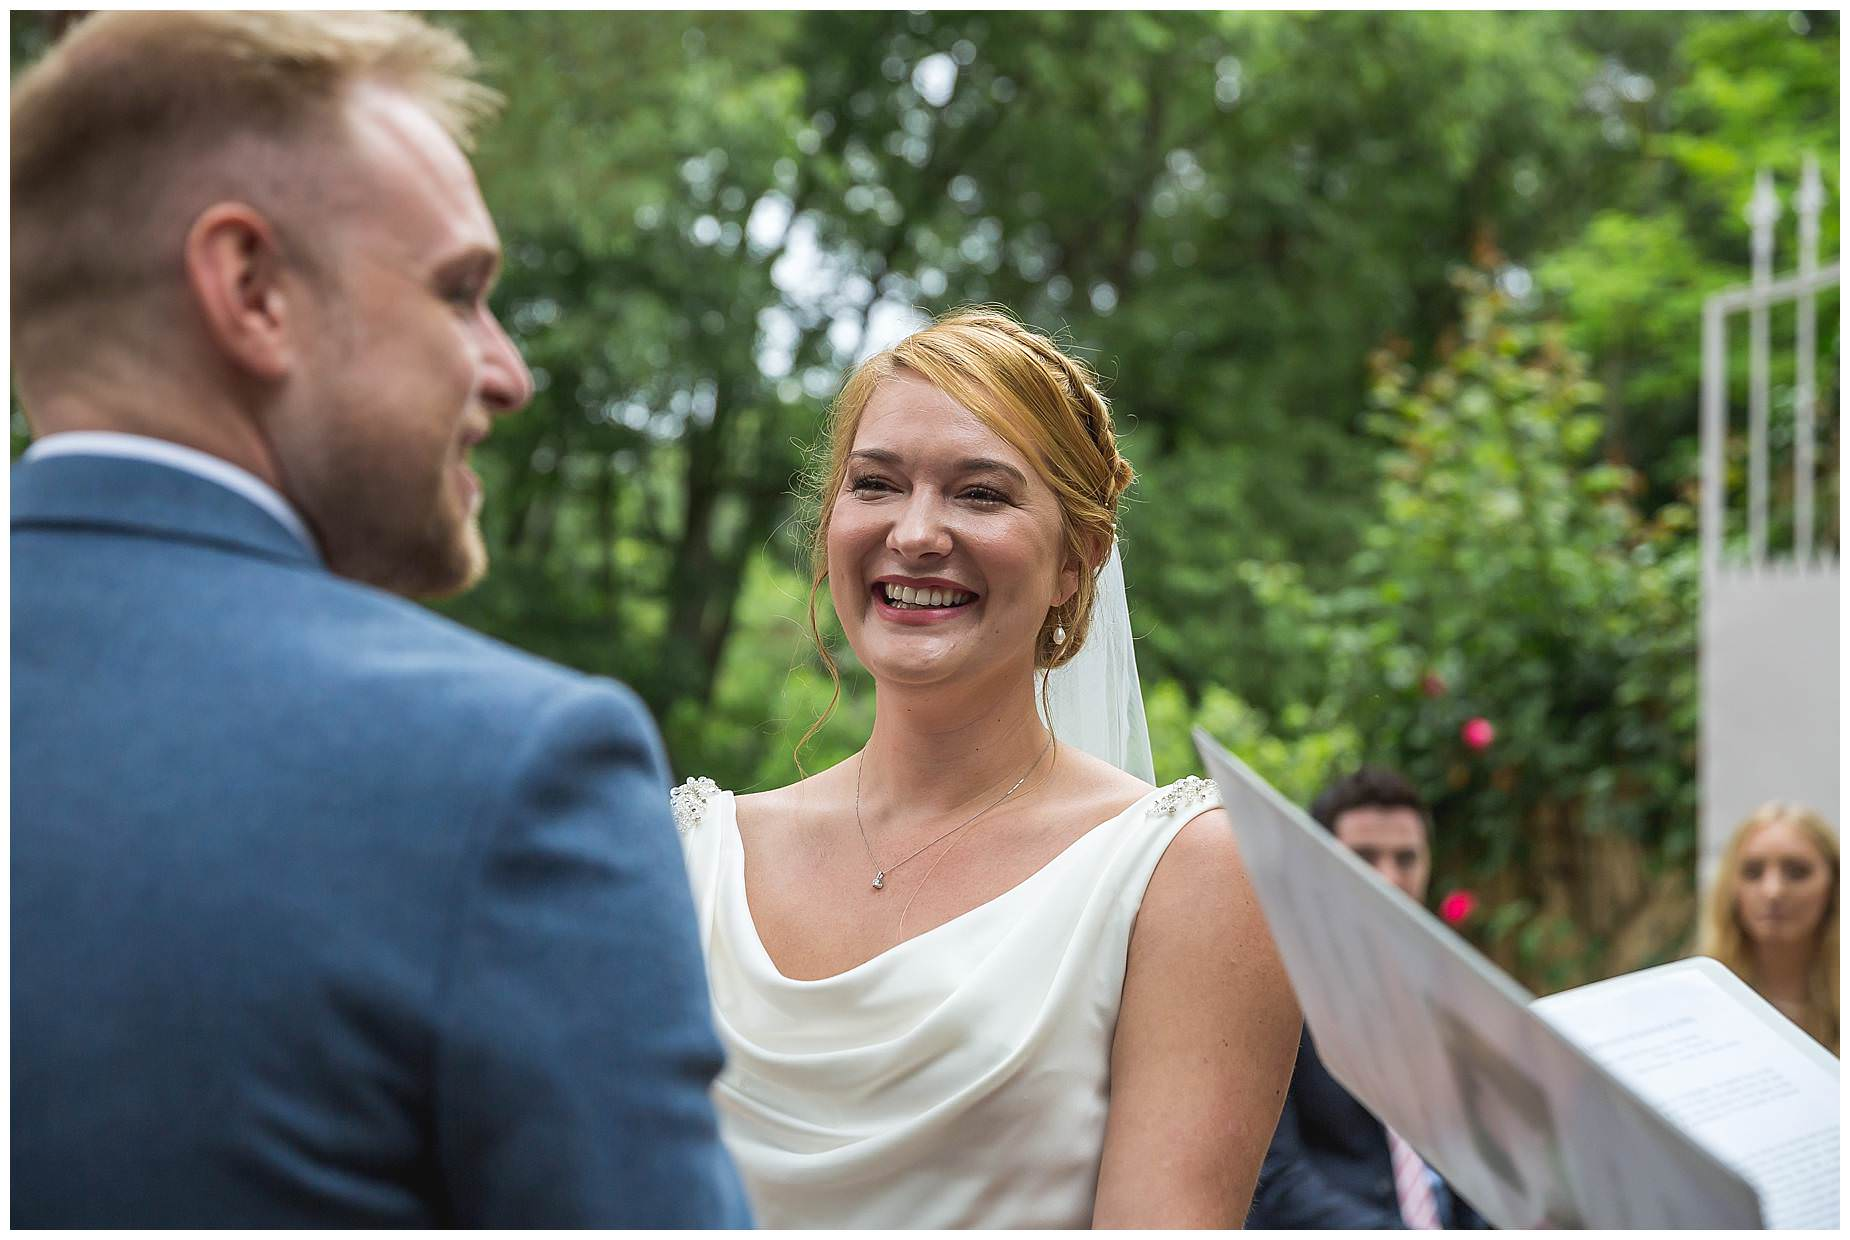 outdoor ceremony at Chateau Roquelune Wedding